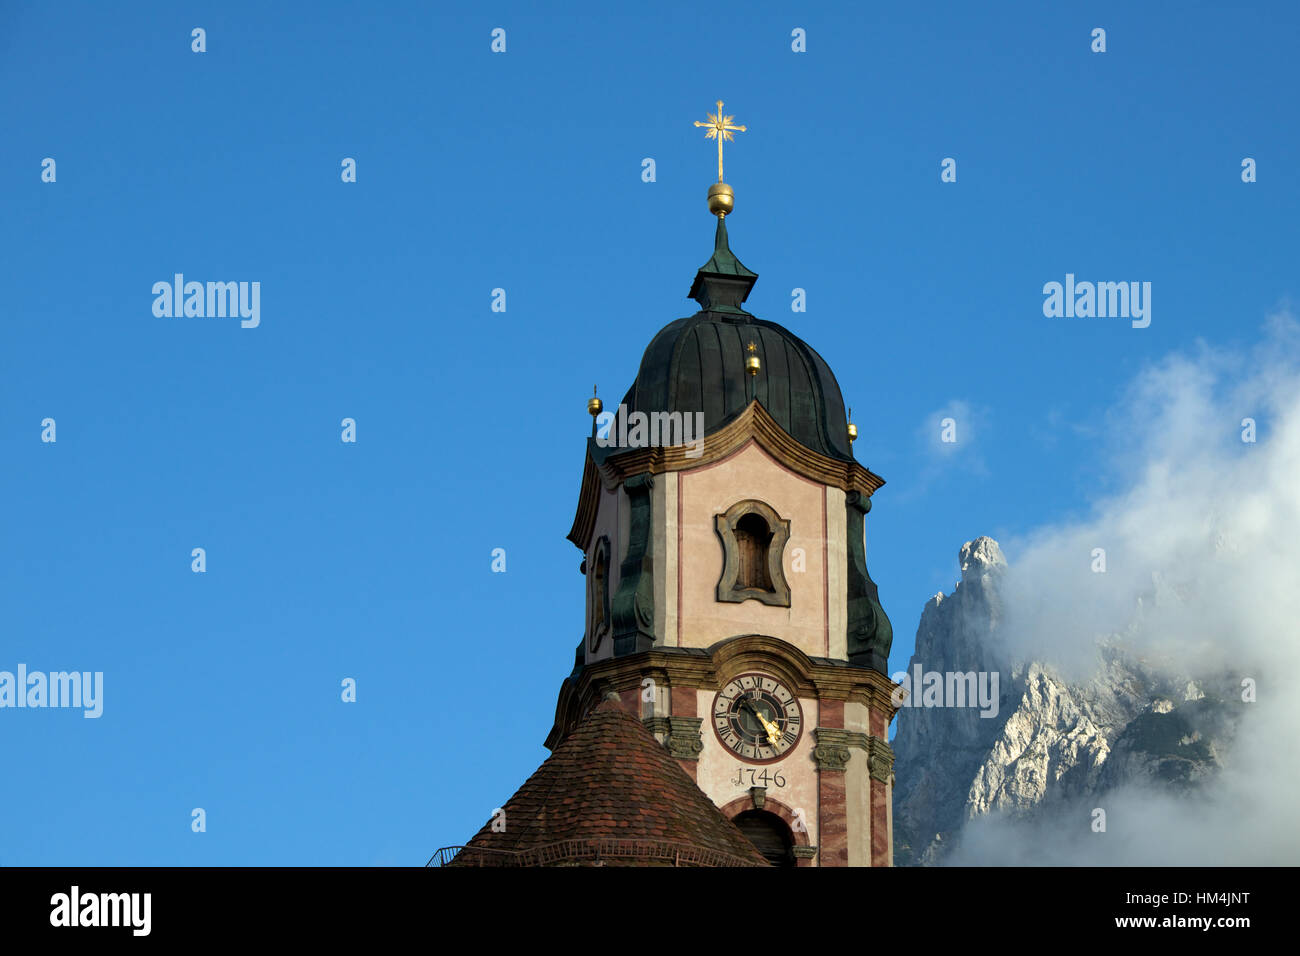 MIttenwald church tower and Karwendel mountains in the background, Bayern, Germany - Stock Image